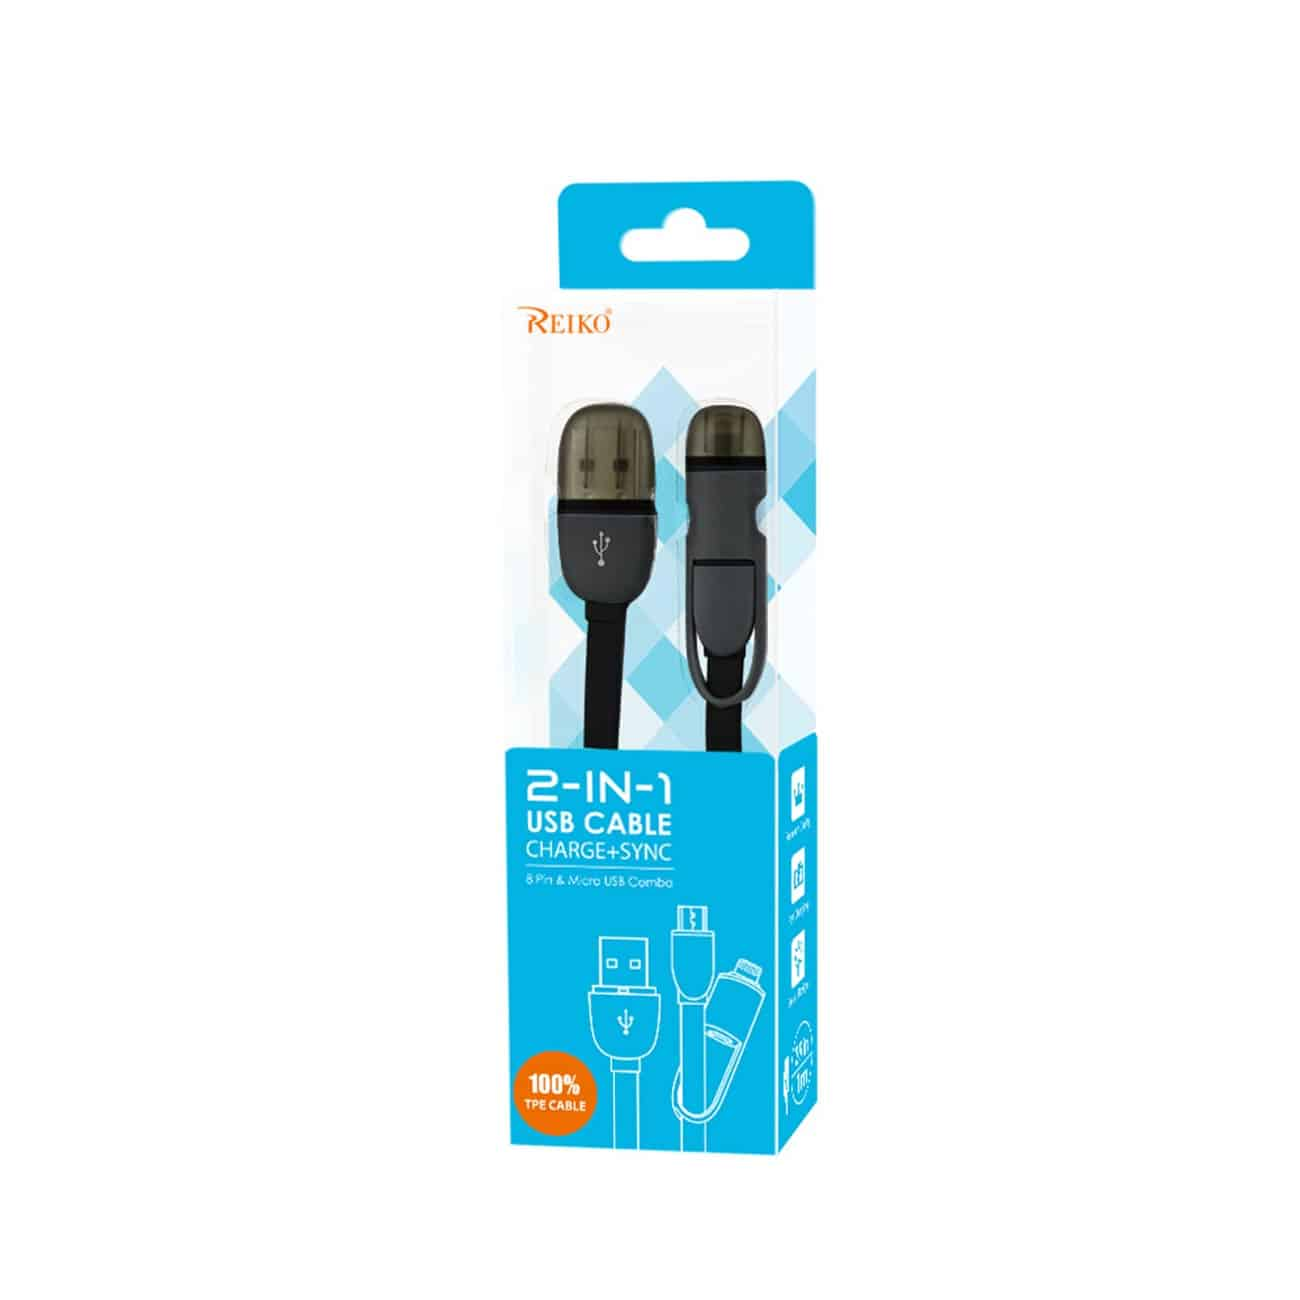 IPHONE 6 AND MICRO USB FLAT CABLE 3.2FT 2-IN-1 USB DATA IN BLACK